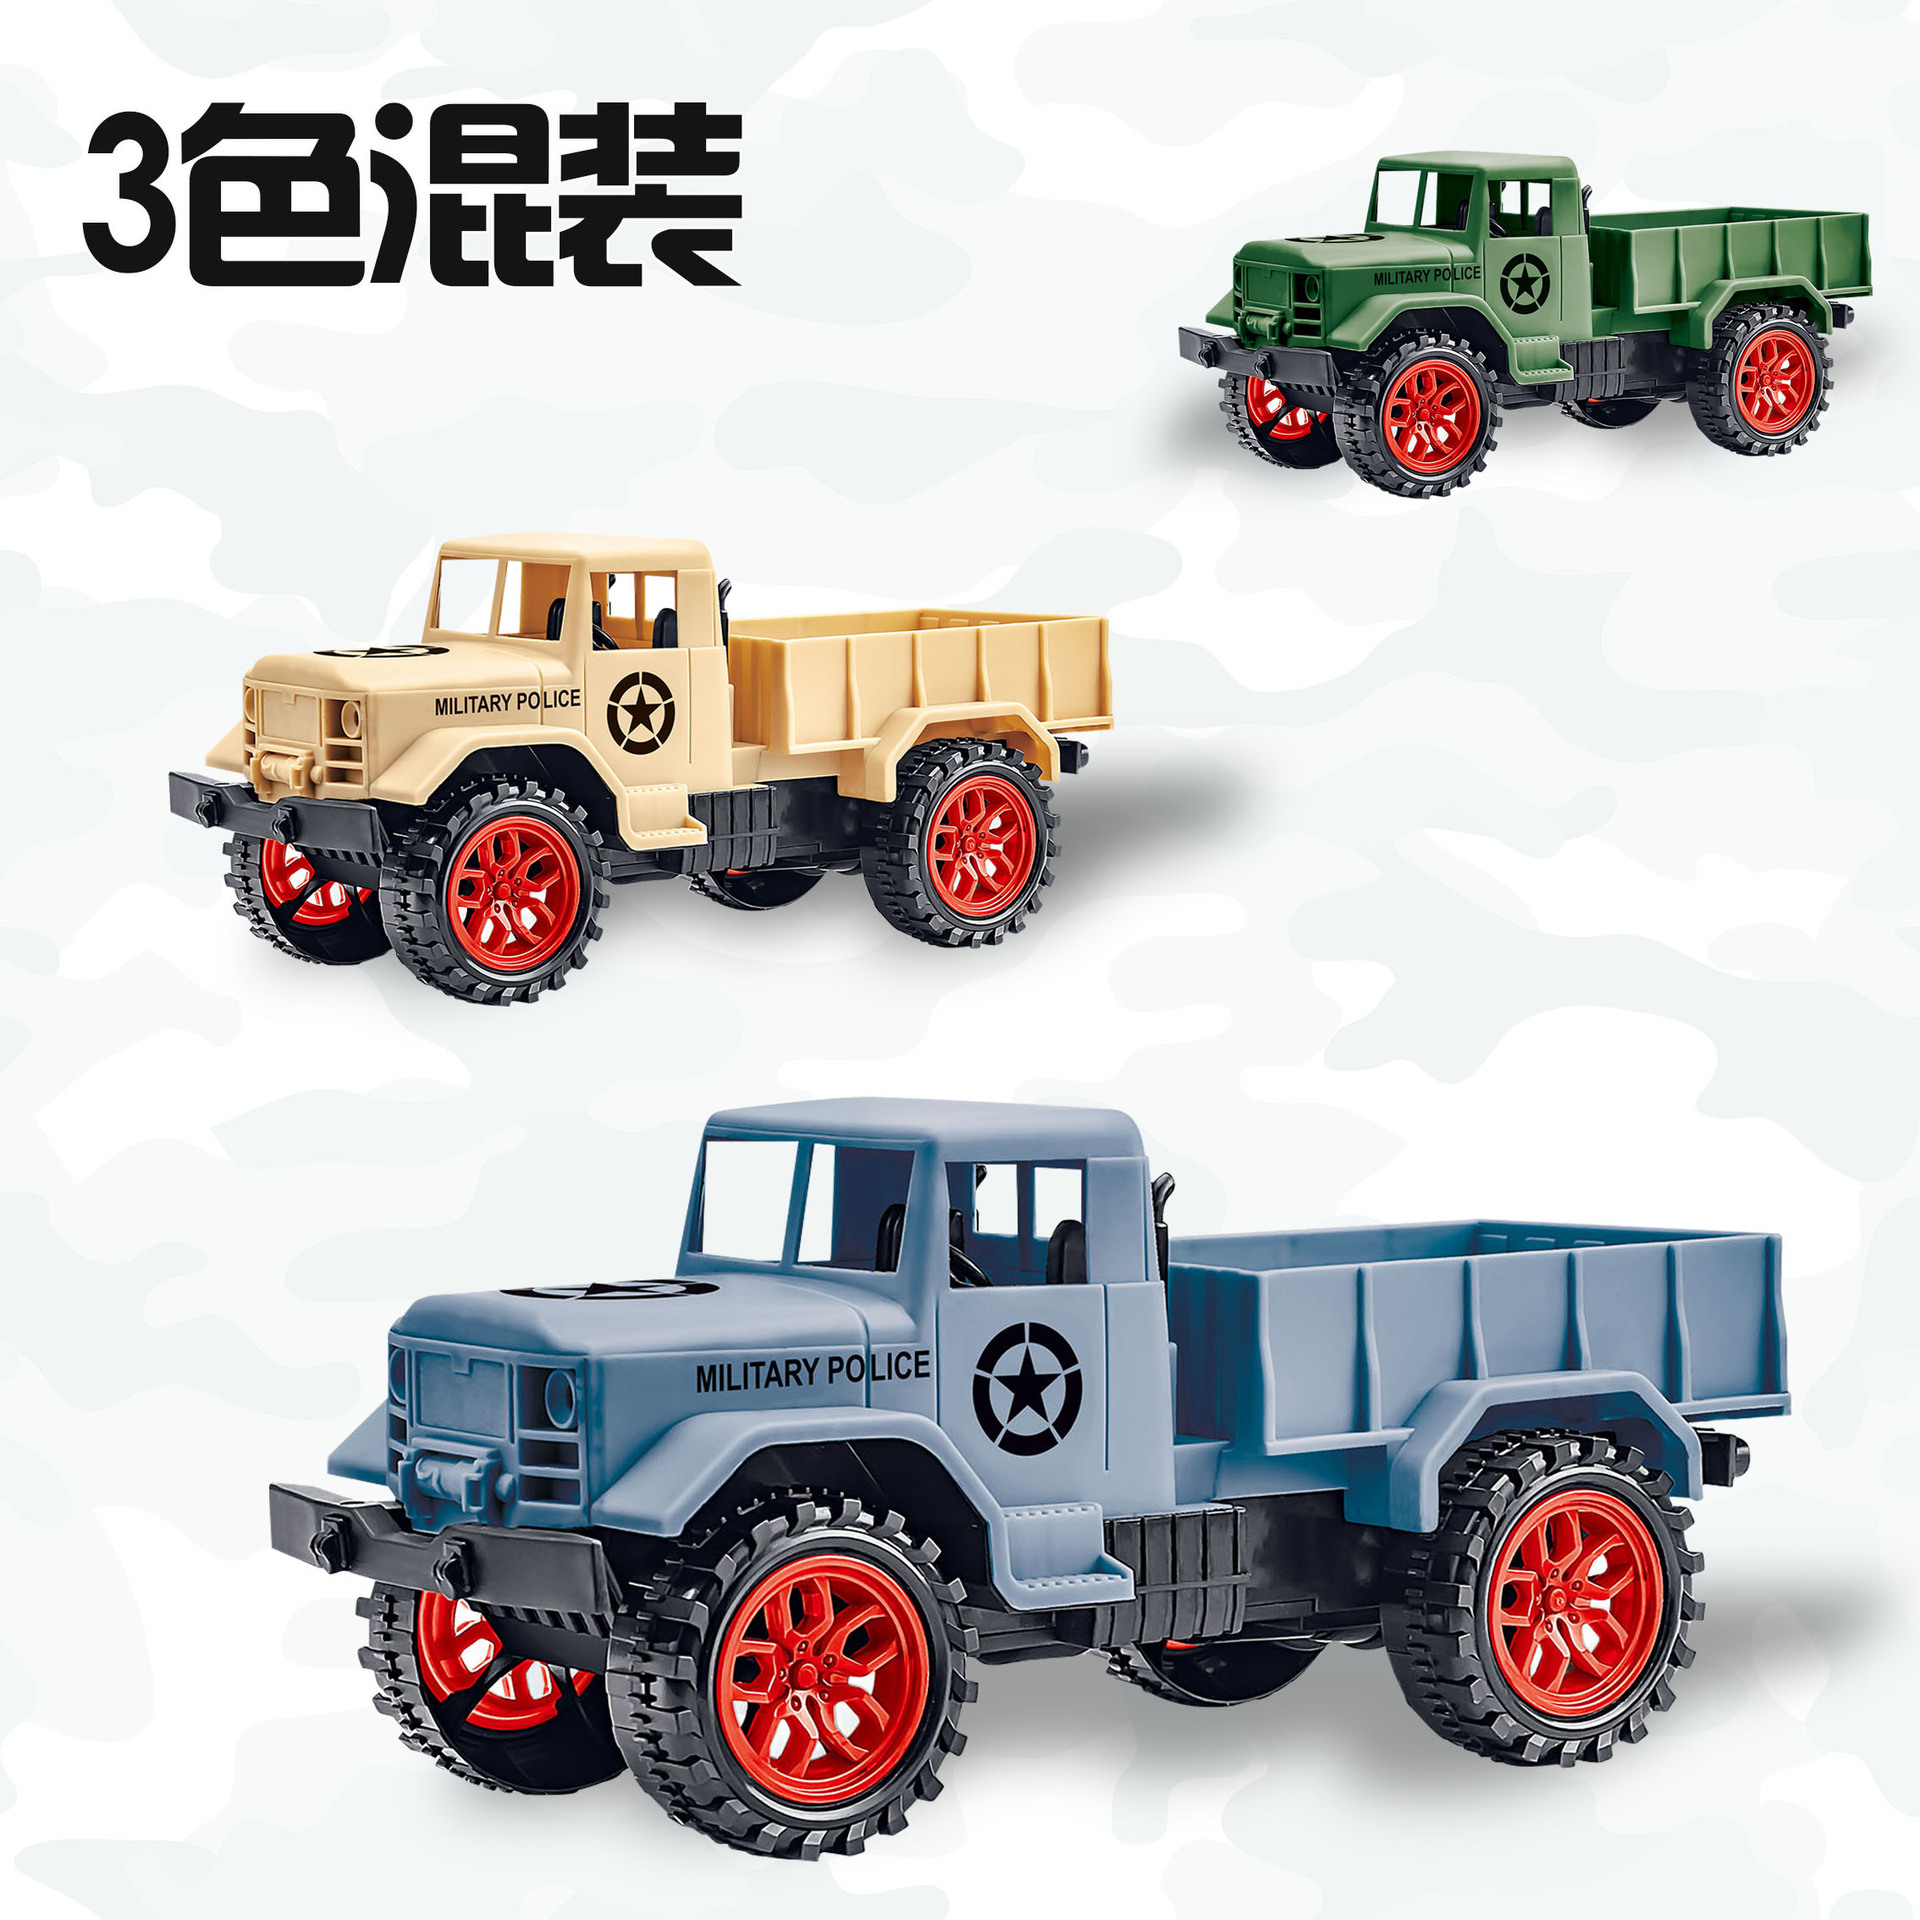 Image 2 - Ertong Remote Control Military Truck Four wheel Off road Military Truck Model Toys Children's Puzzle Gifts Hot selling Toys-in RC Cars from Toys & Hobbies